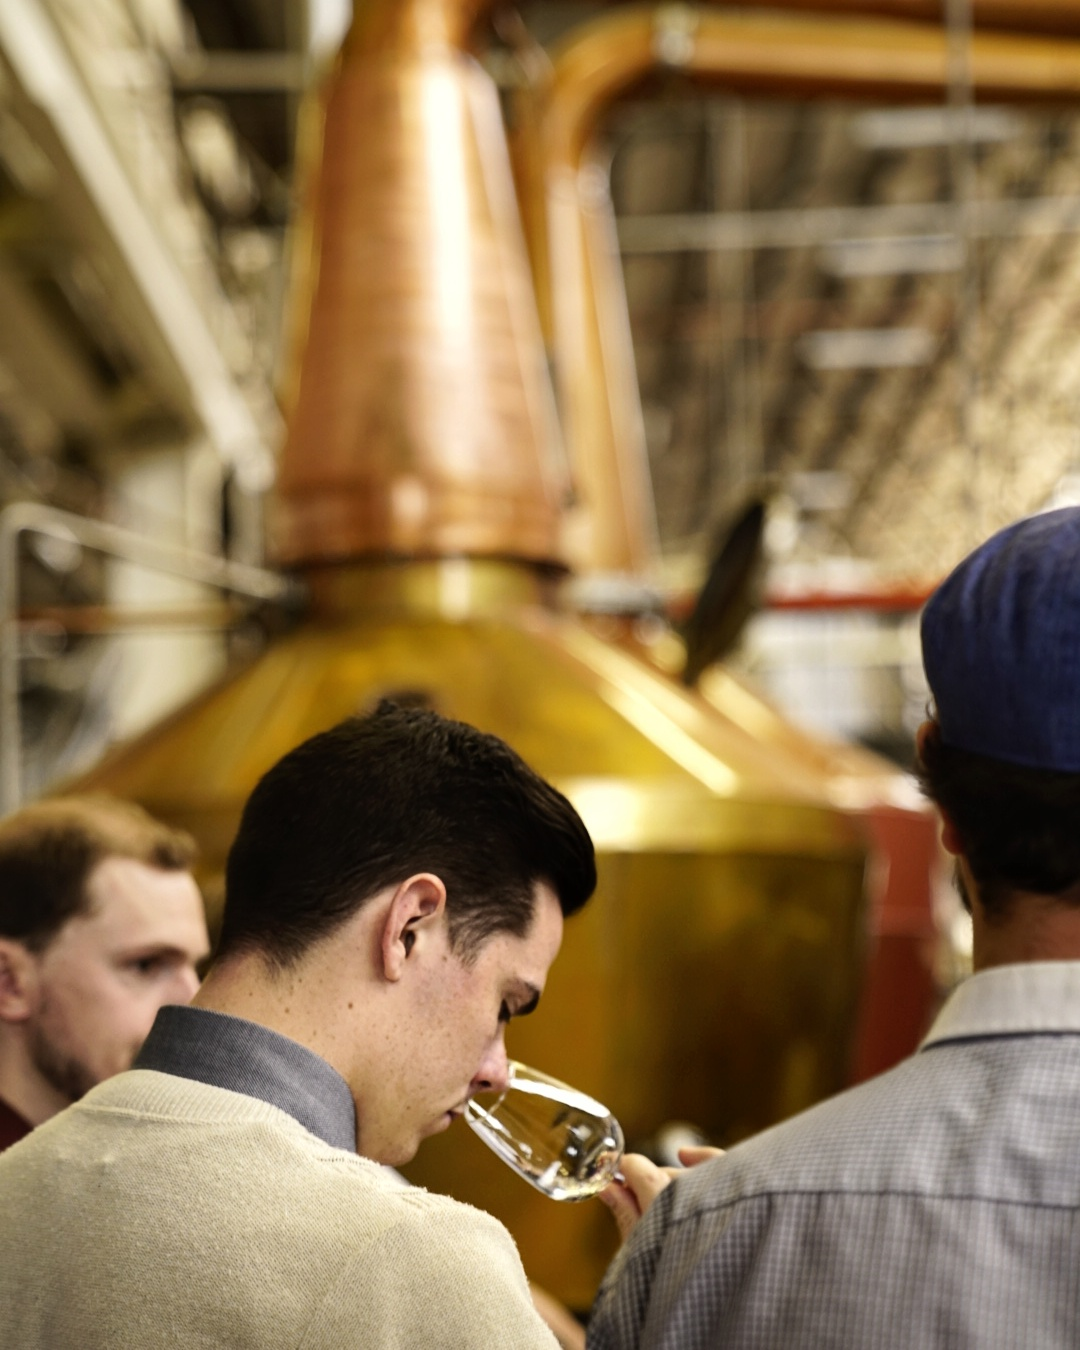 Tasting melbourne whisky on a tour in Port Melbourne